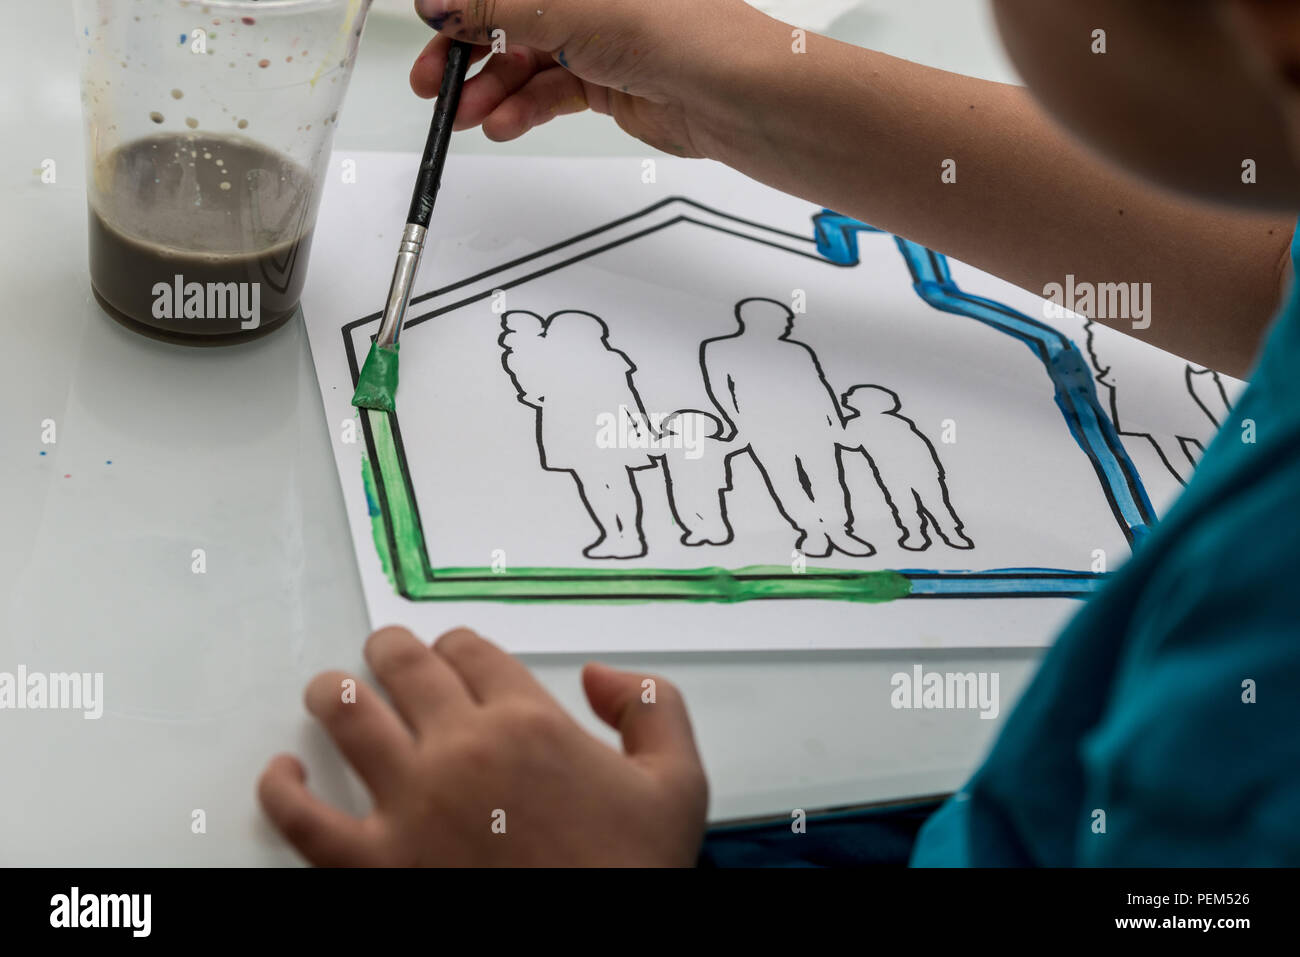 Young child colouring in a sketch of a family in a house using a paintbrush and watercolour paints in an over the shoulder view of the artwork. - Stock Image